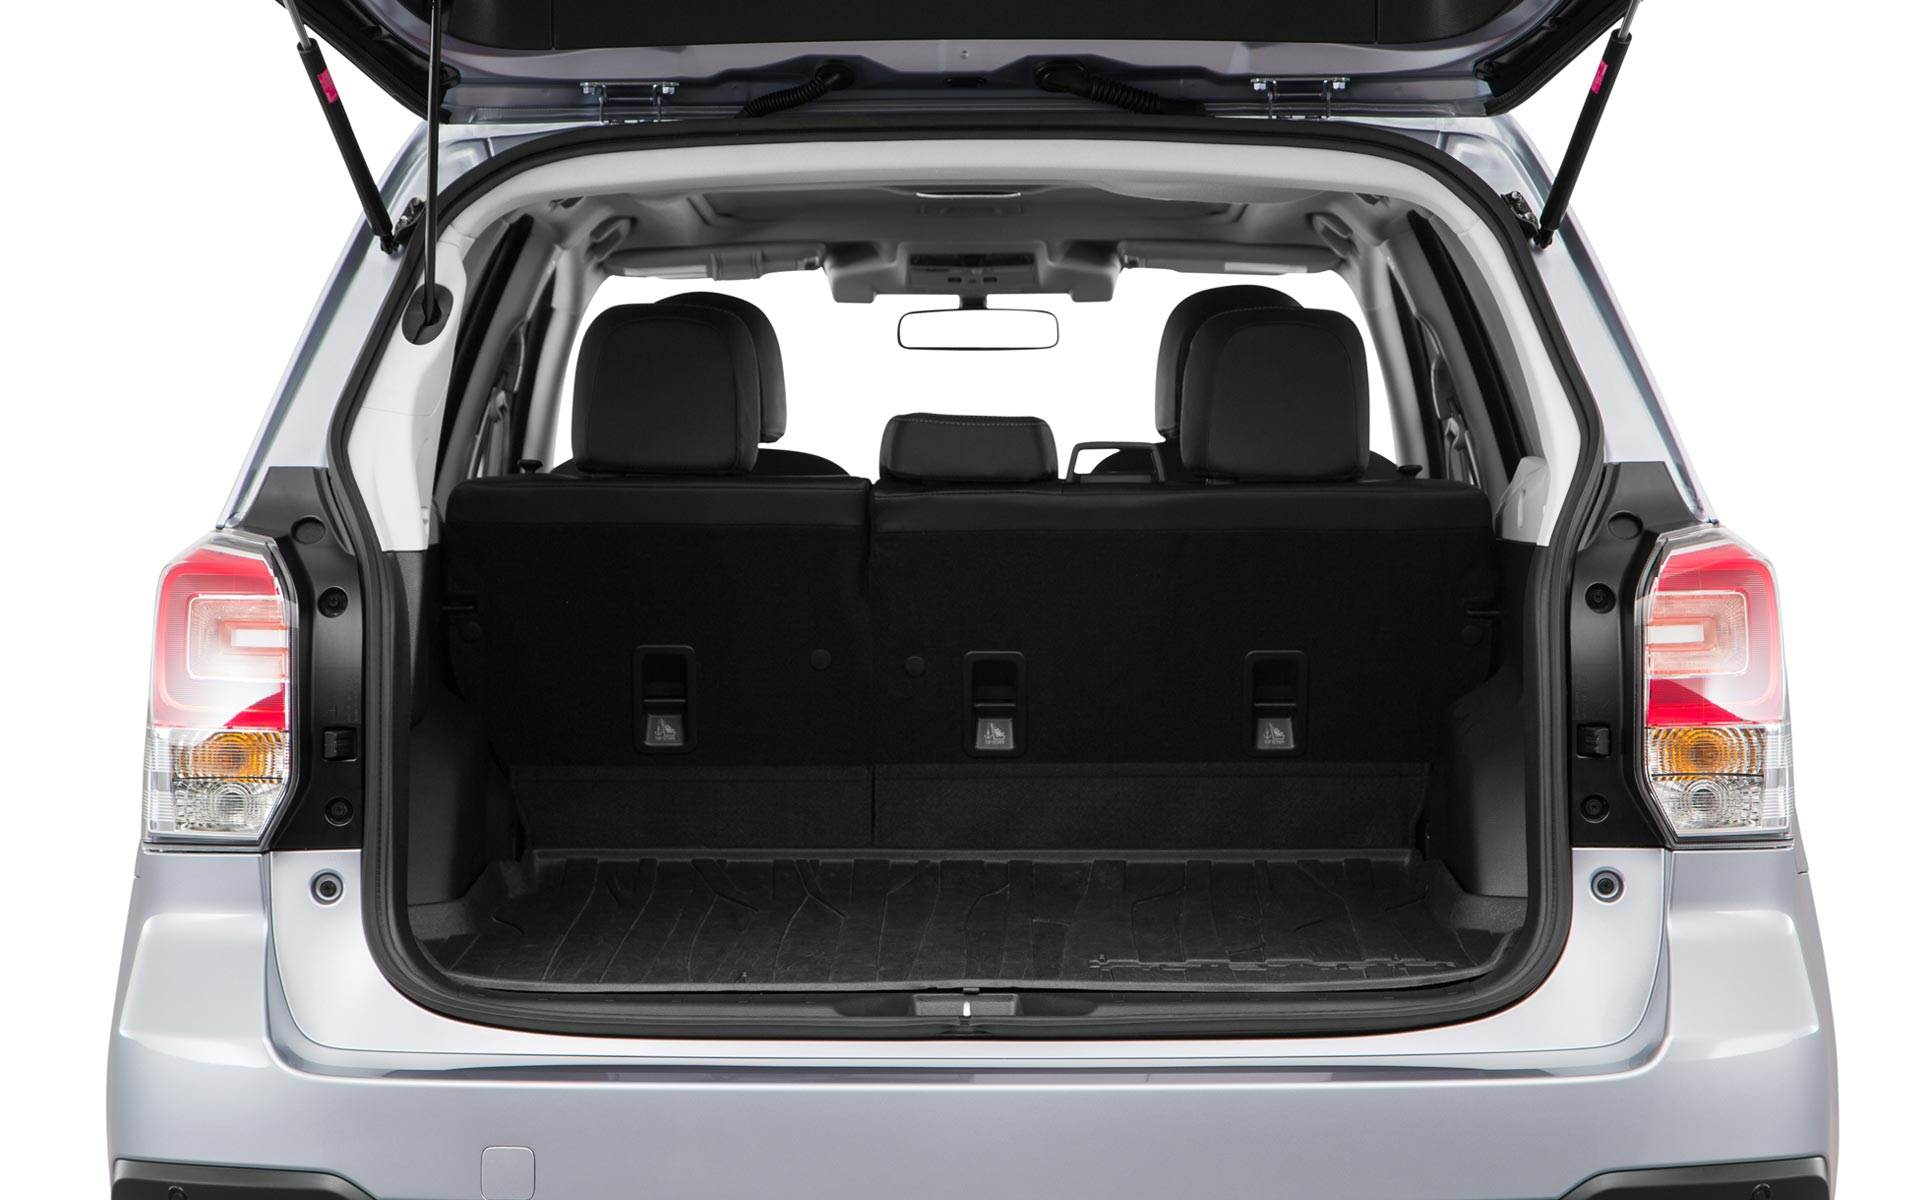 Cargo Space in the Forester